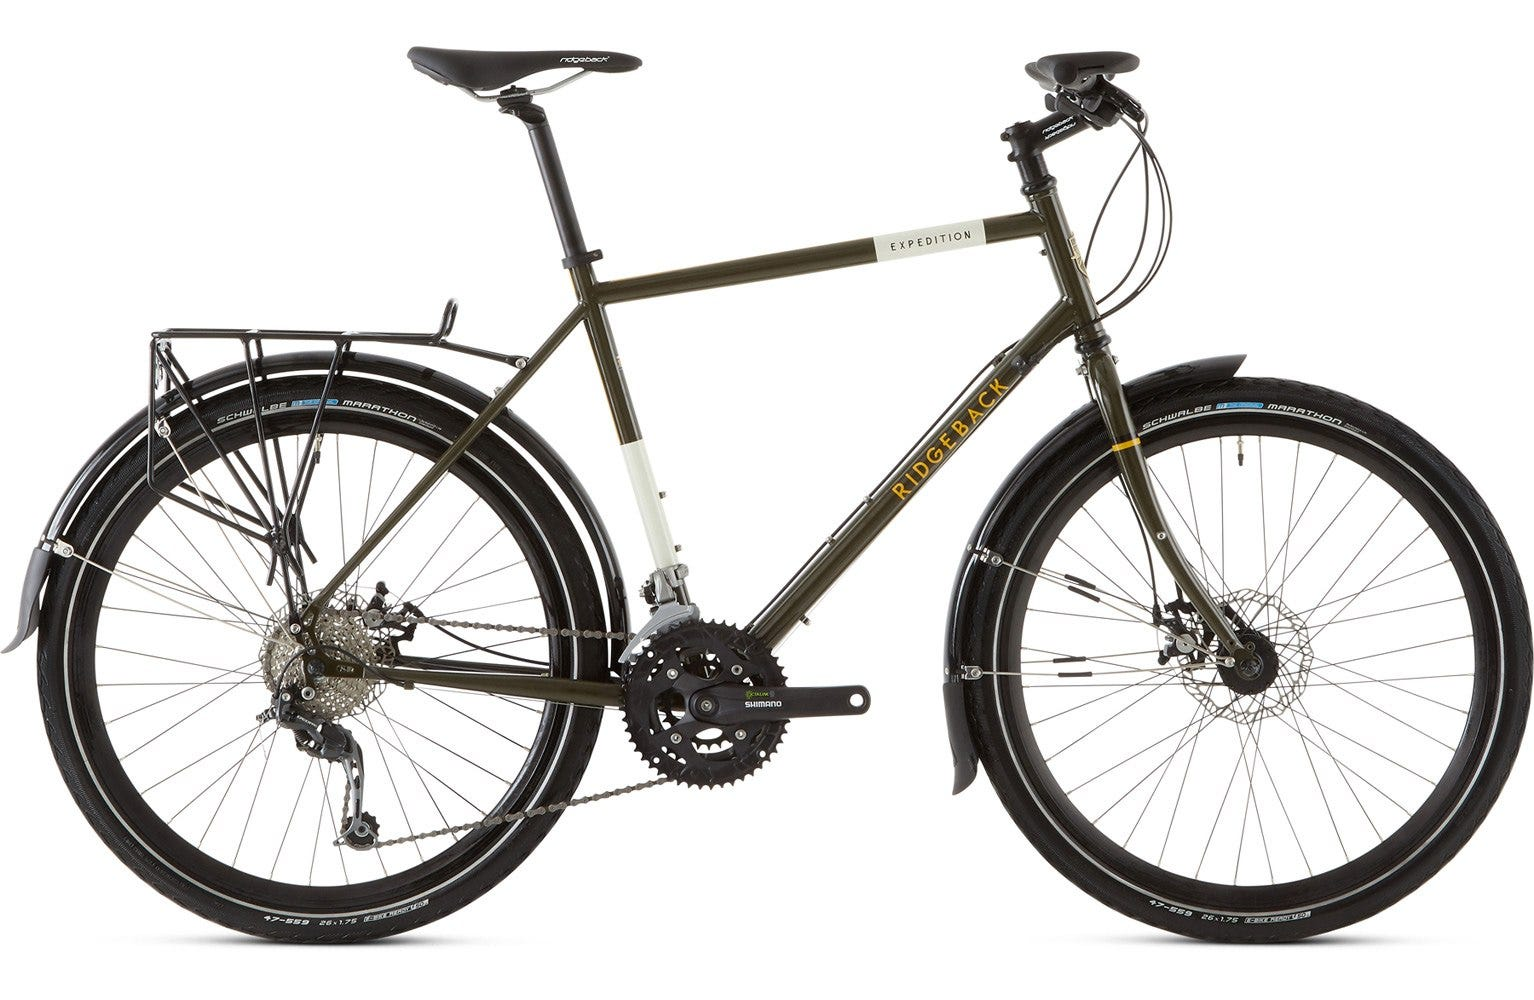 Ridgeback Expedition MD bike ample (unused)